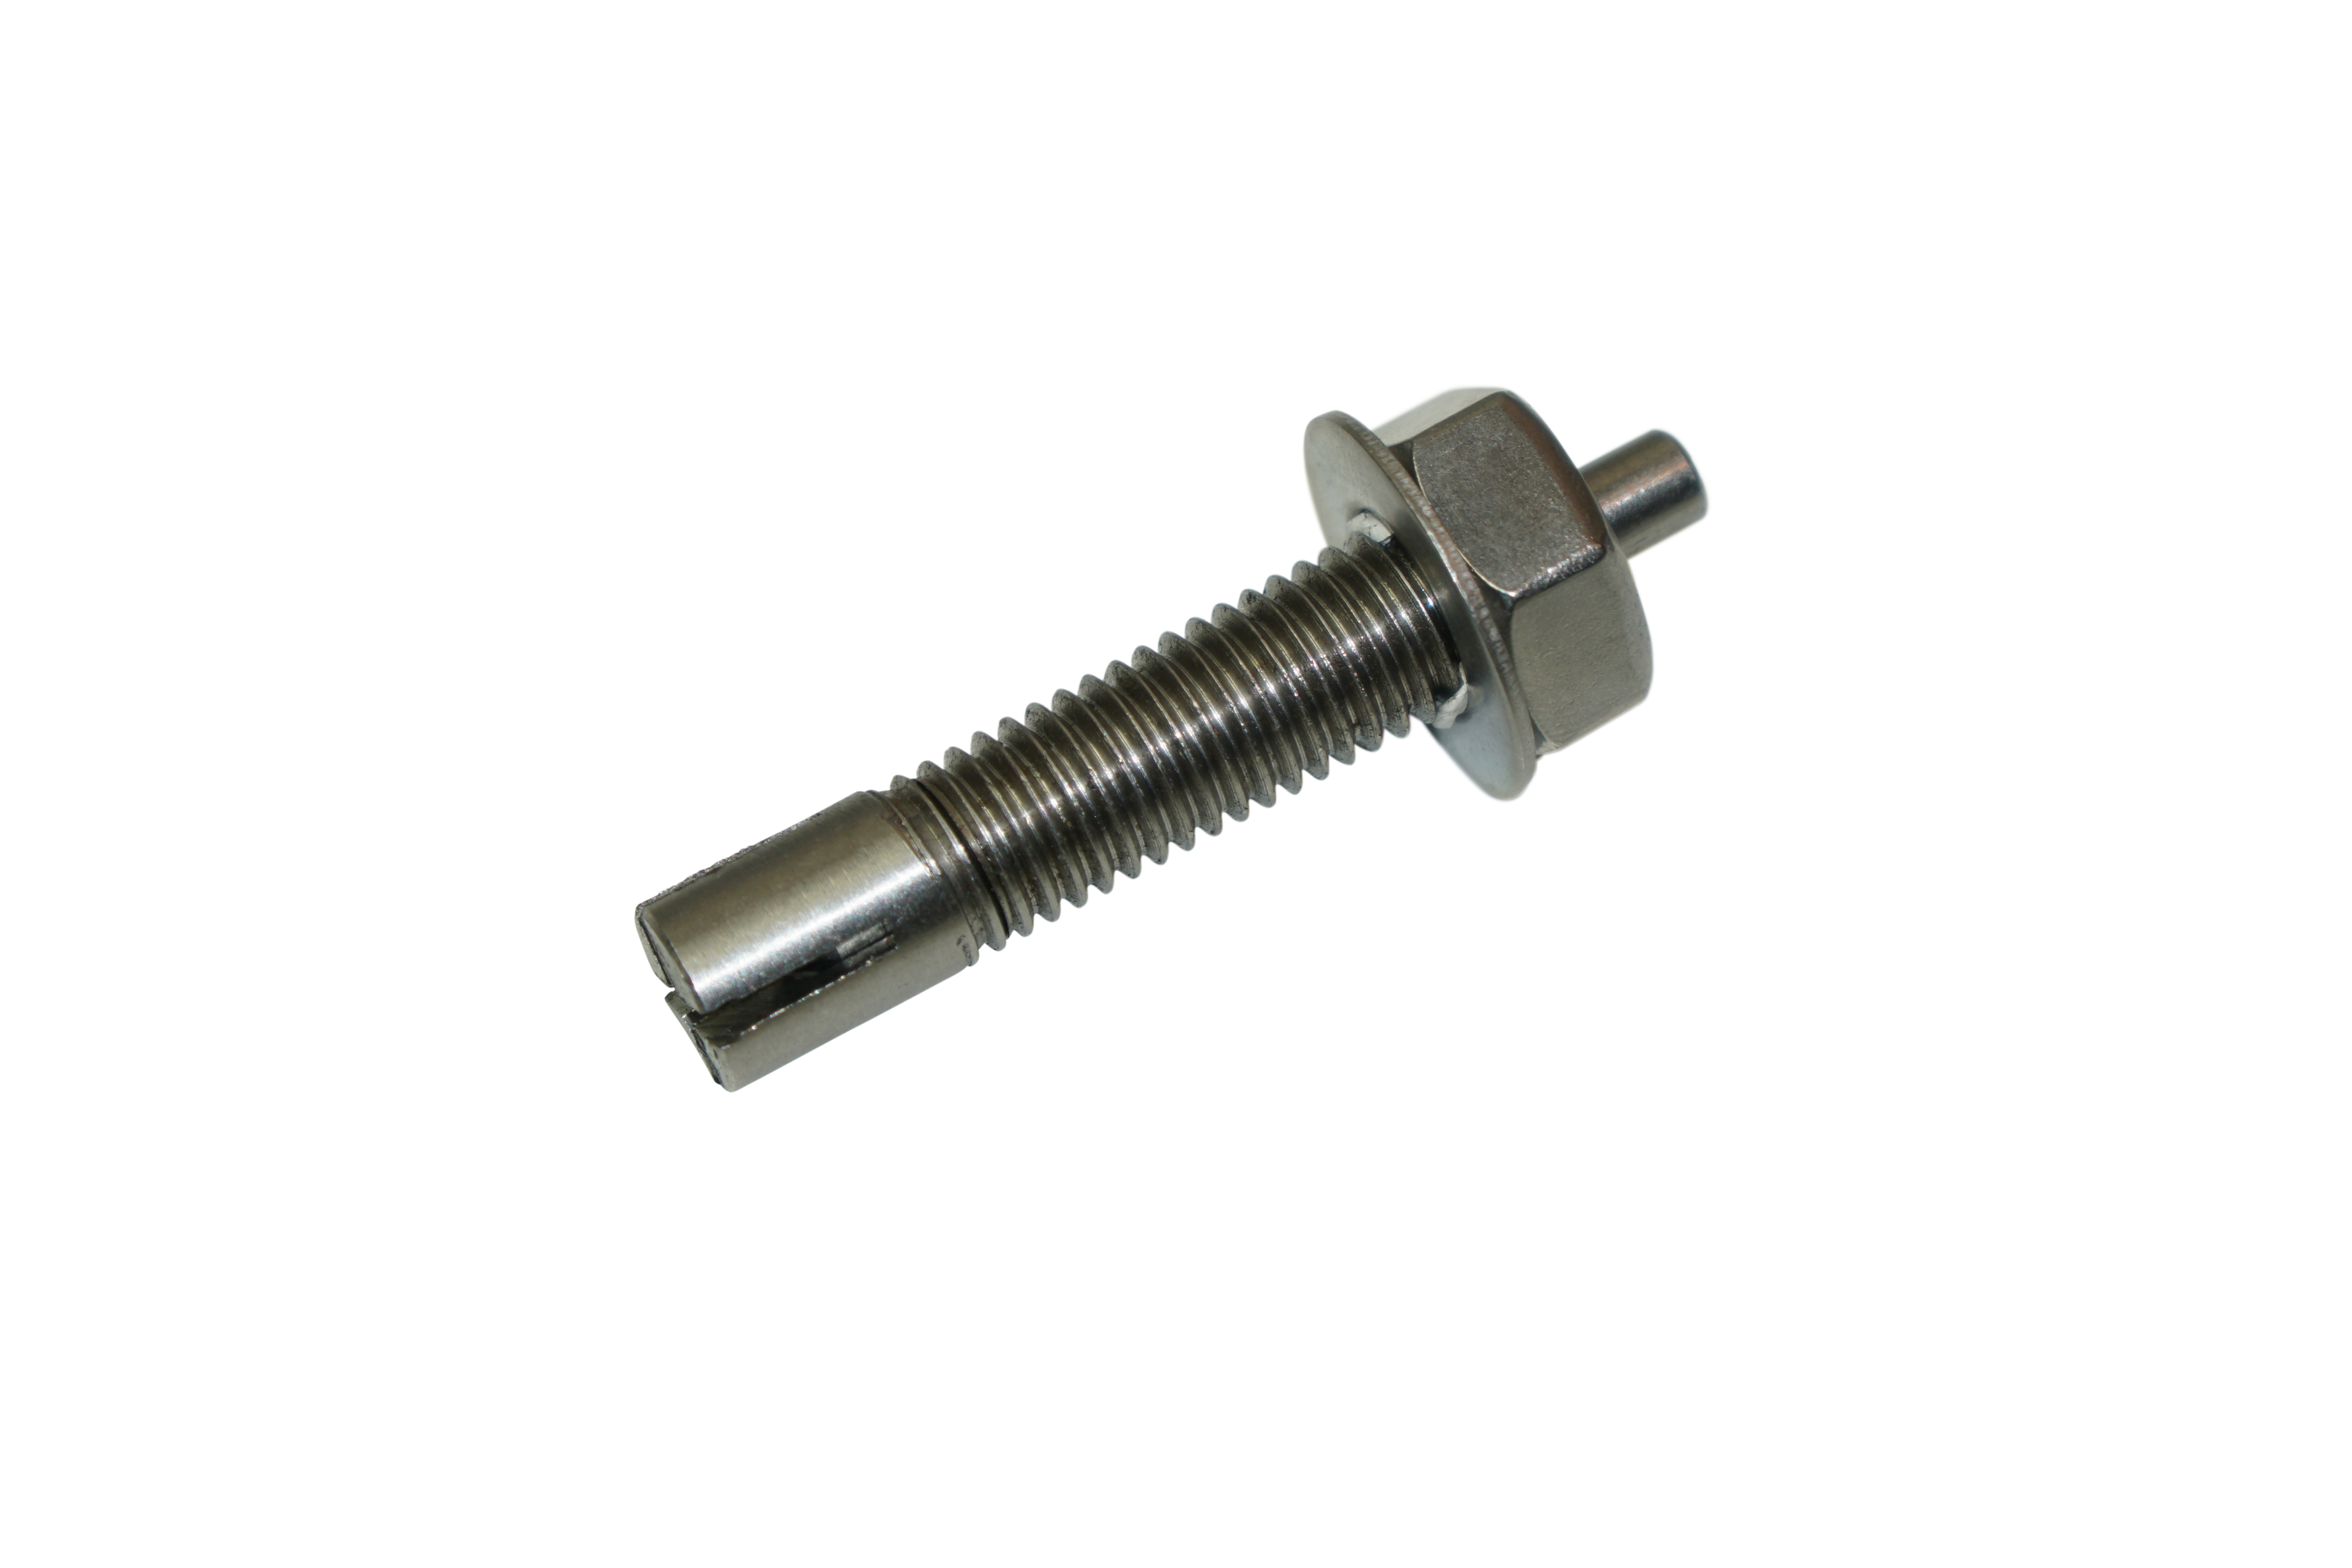 M10 x 50 Stainless Steel Molabolt Peg Anchor